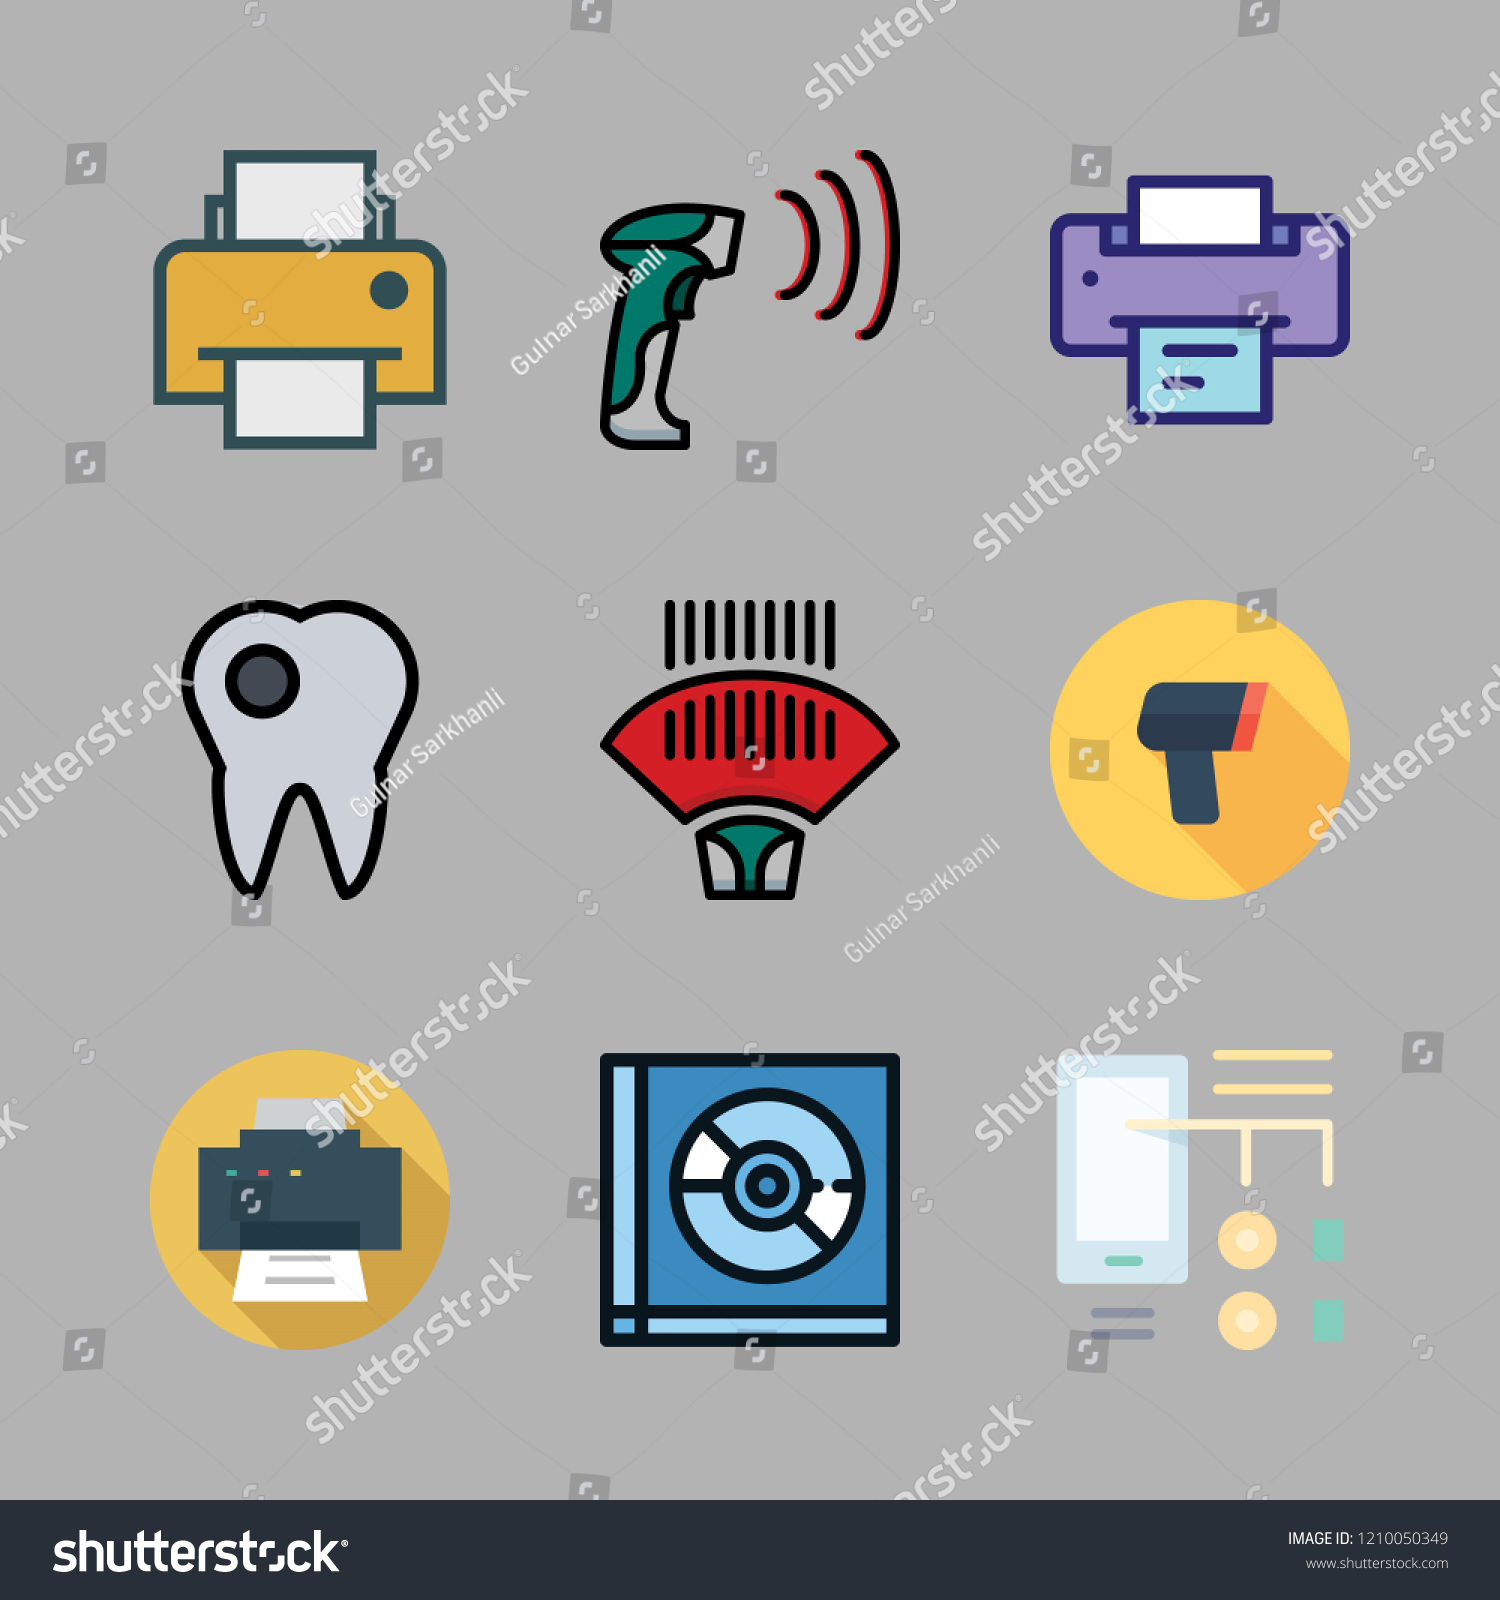 stock vector laser icon set vector set about diagram id scanning compact disc and printer icons set 1210050349 laser icon set vector set about stock vector (royalty free